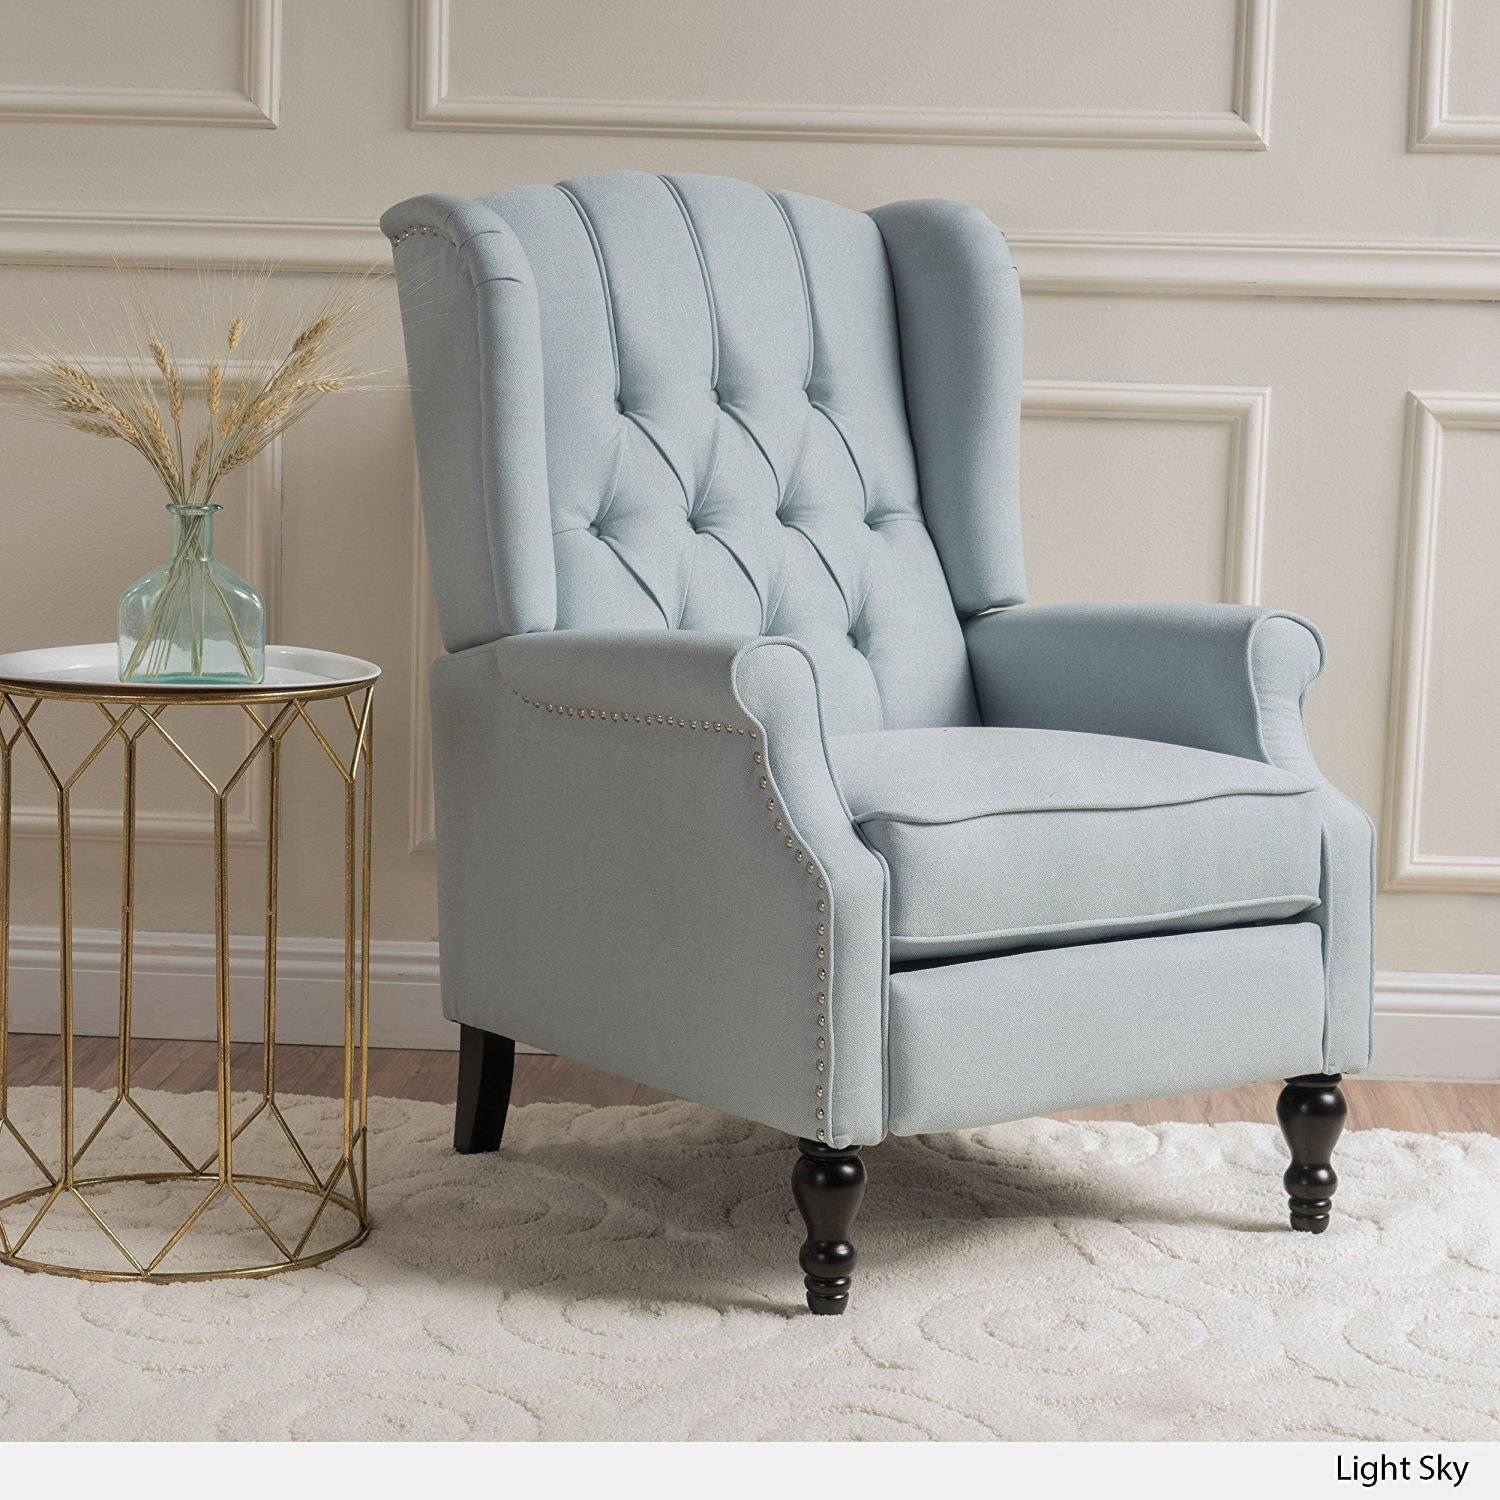 Most Comfortable Living Roomfurniture 30 Best Cozy Chairs for Living Rooms Most fortable